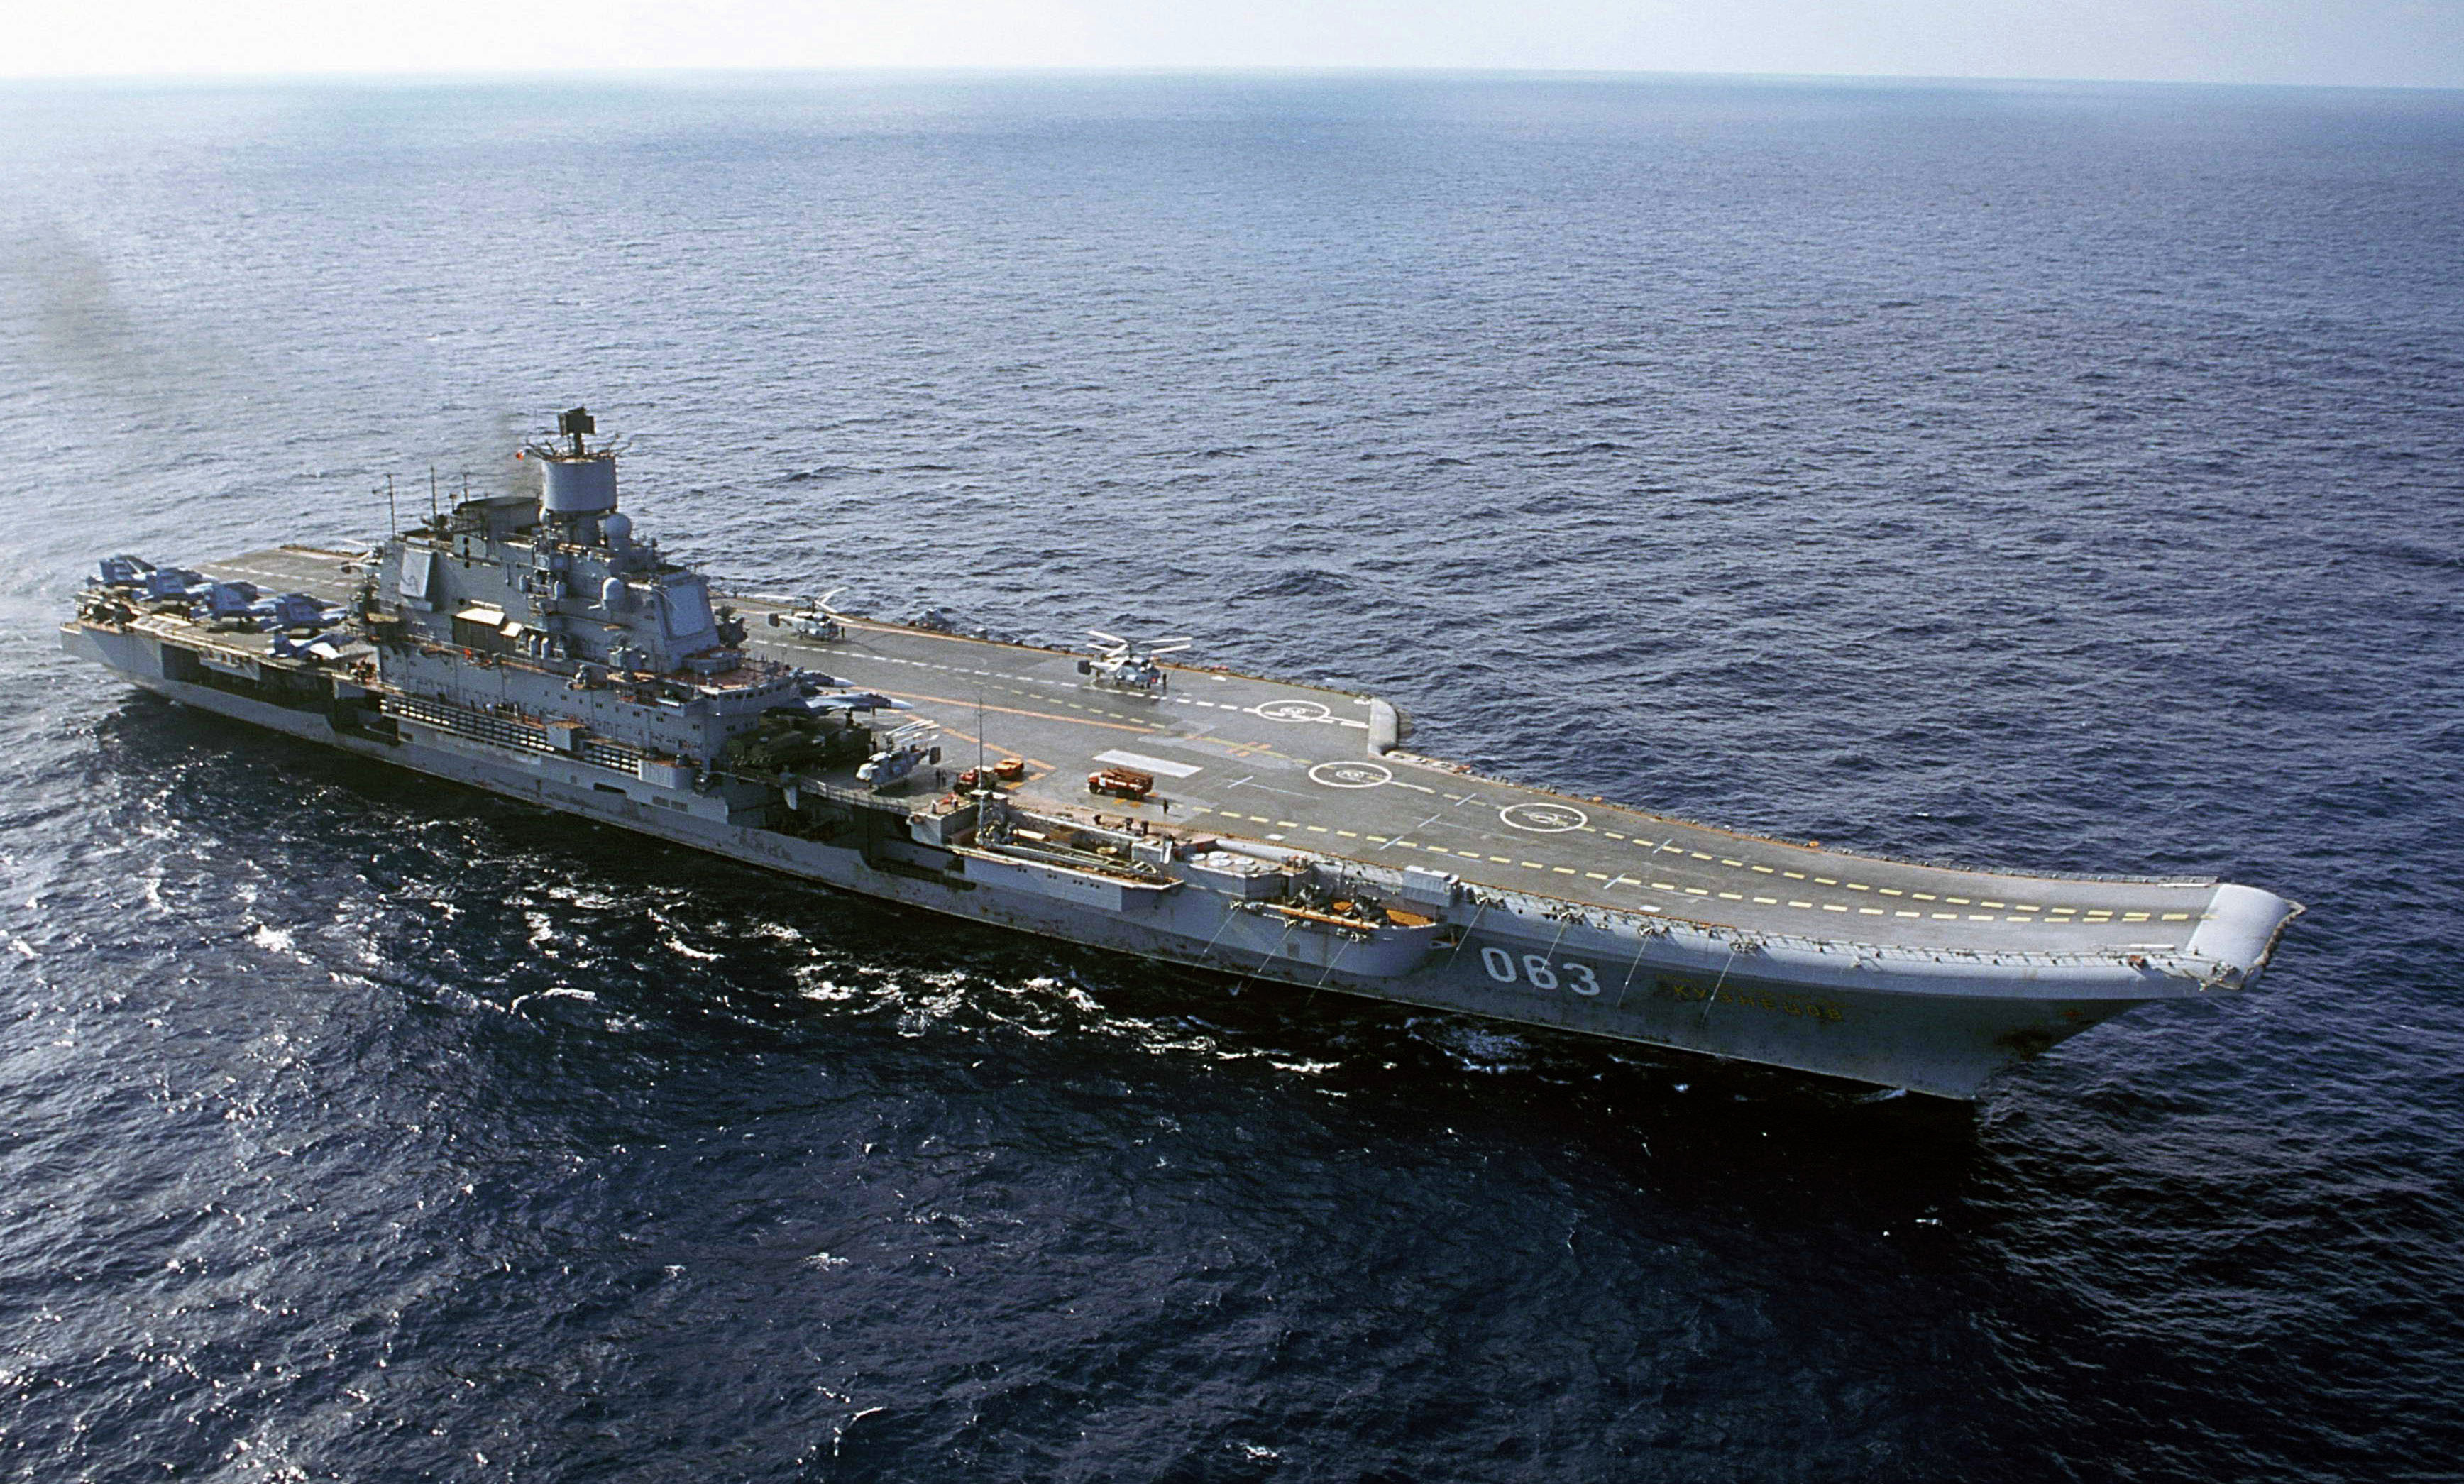 In this file photo from 2004, the Russian Navy's Admiral Kuznetsov aircraft carrier is seen in the Barents Sea, Russia